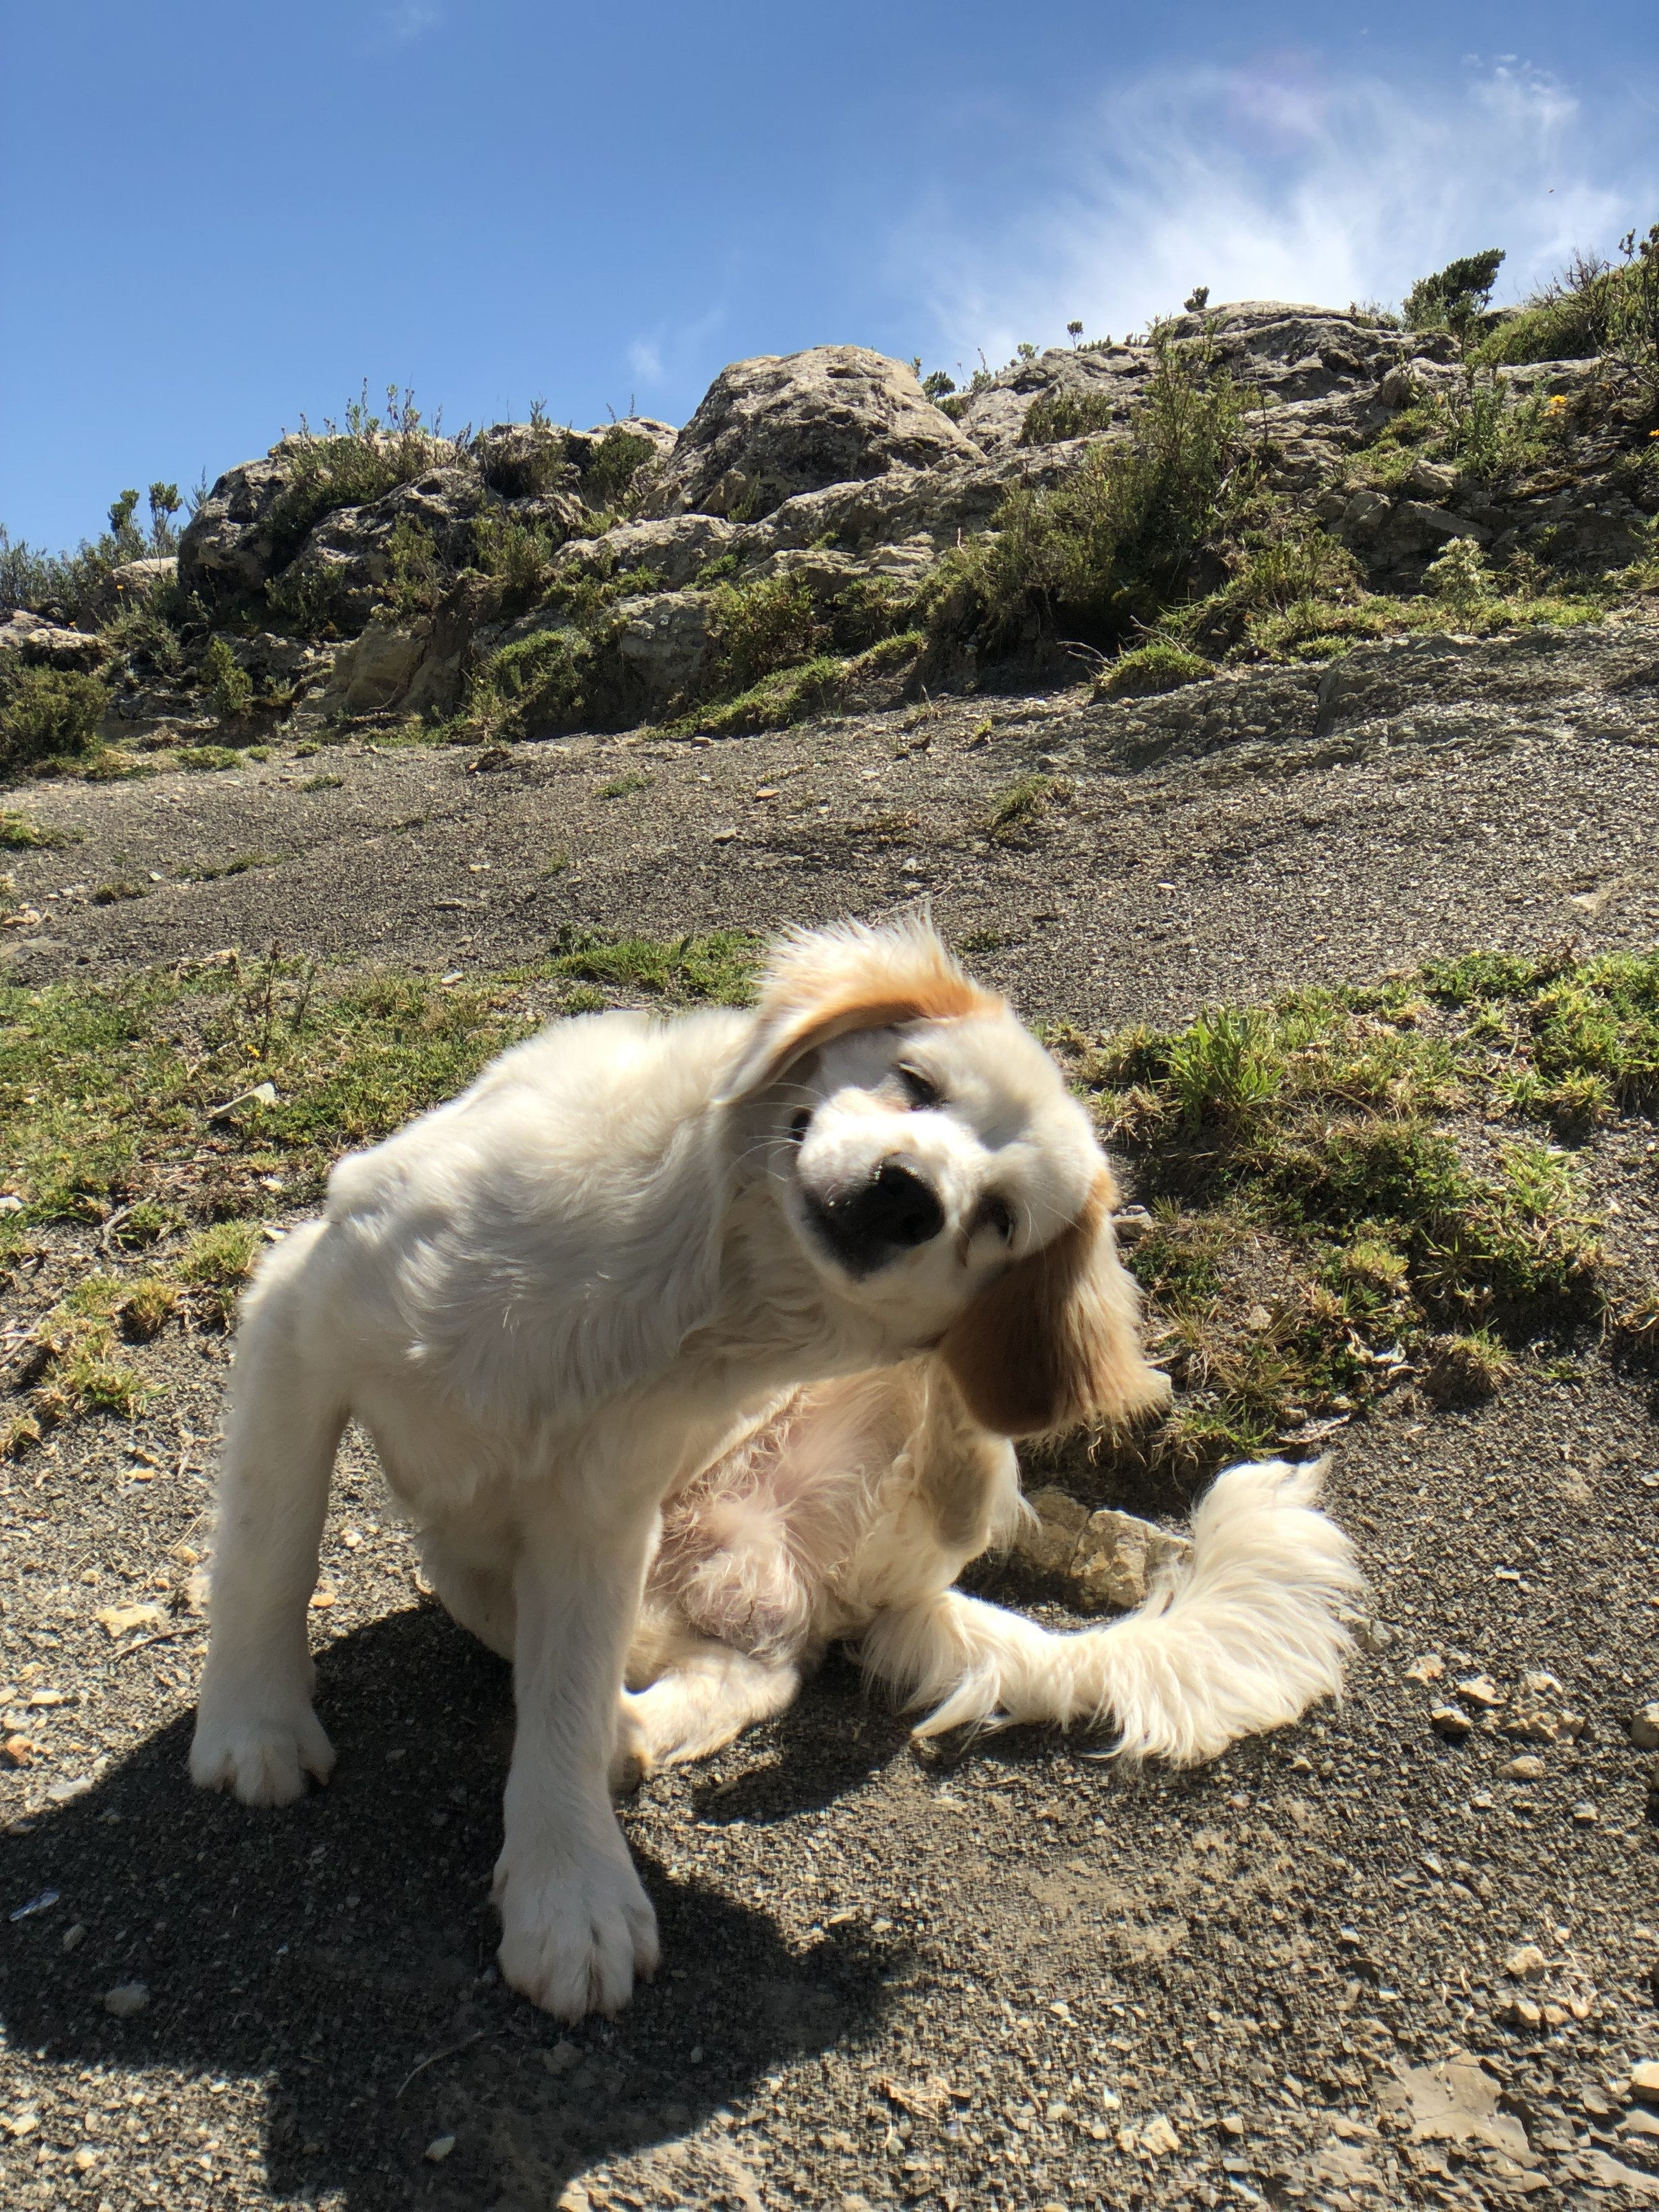 isla-del-sol-lake-titicaca-bolivia-travel-dog